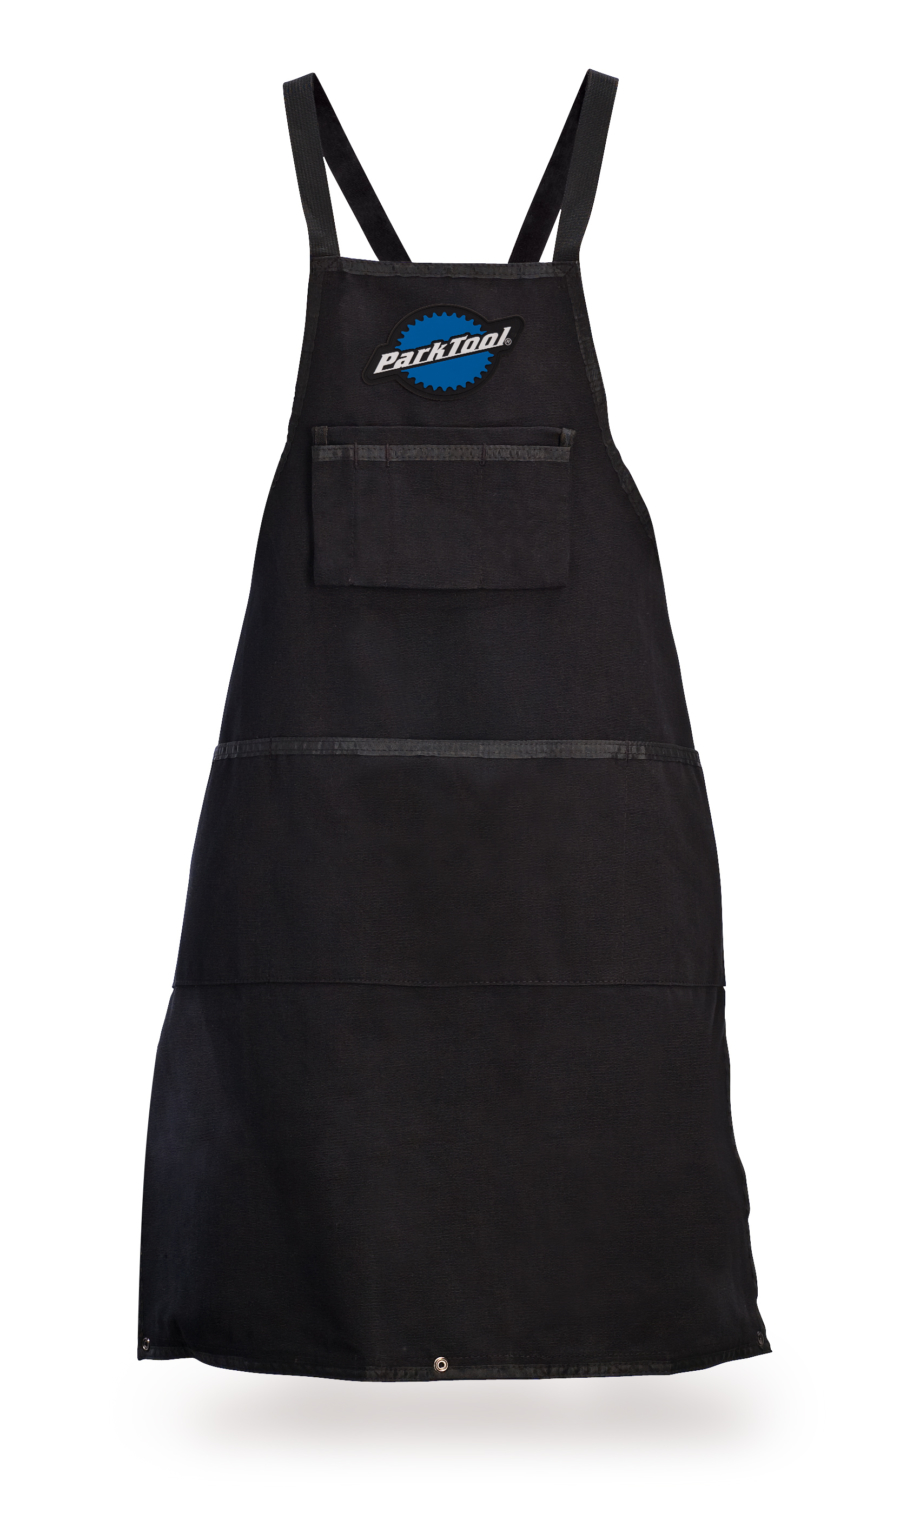 Front of the Park Tool SA-3, Heavy Duty Shop Apron, enlarged